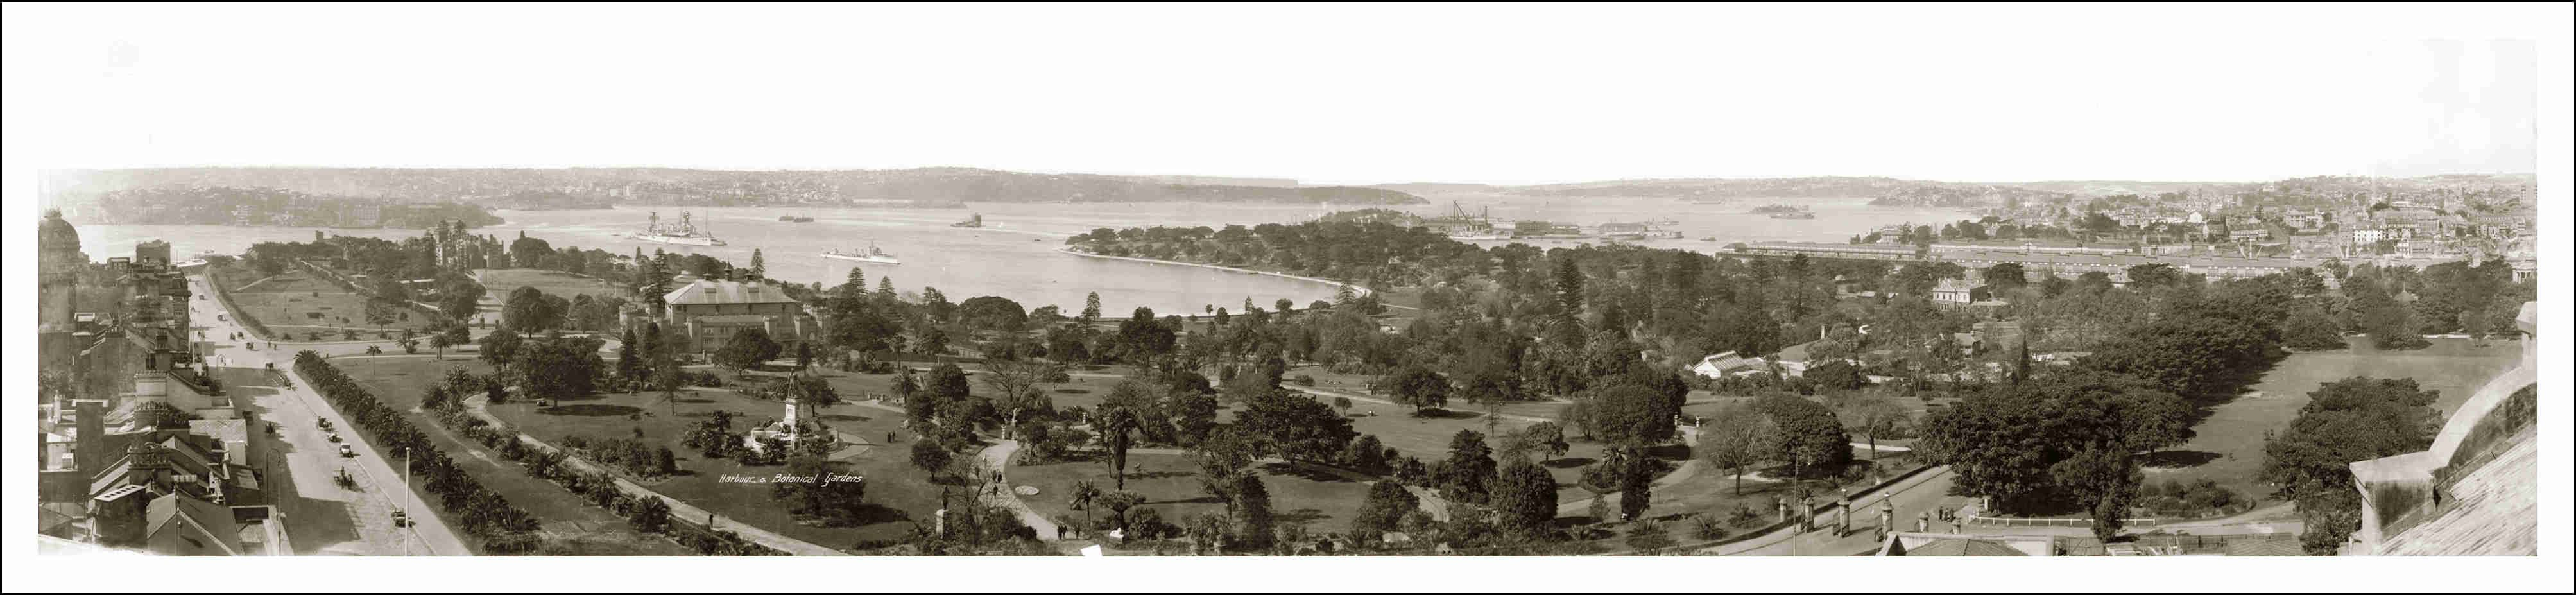 Harbour And Botanical Gardens - Sydney c 1920, from the Wyoming Building in Macquarie Street, from left, Macquarie Street, Bennelong Point, Government House, Conservatorium of Music, Warships in Harbour, Farm Cove, looking across Botanical Gardens, Mrs. Macquarie's Point, Garden Island as an island, Potts Point and The Domain.